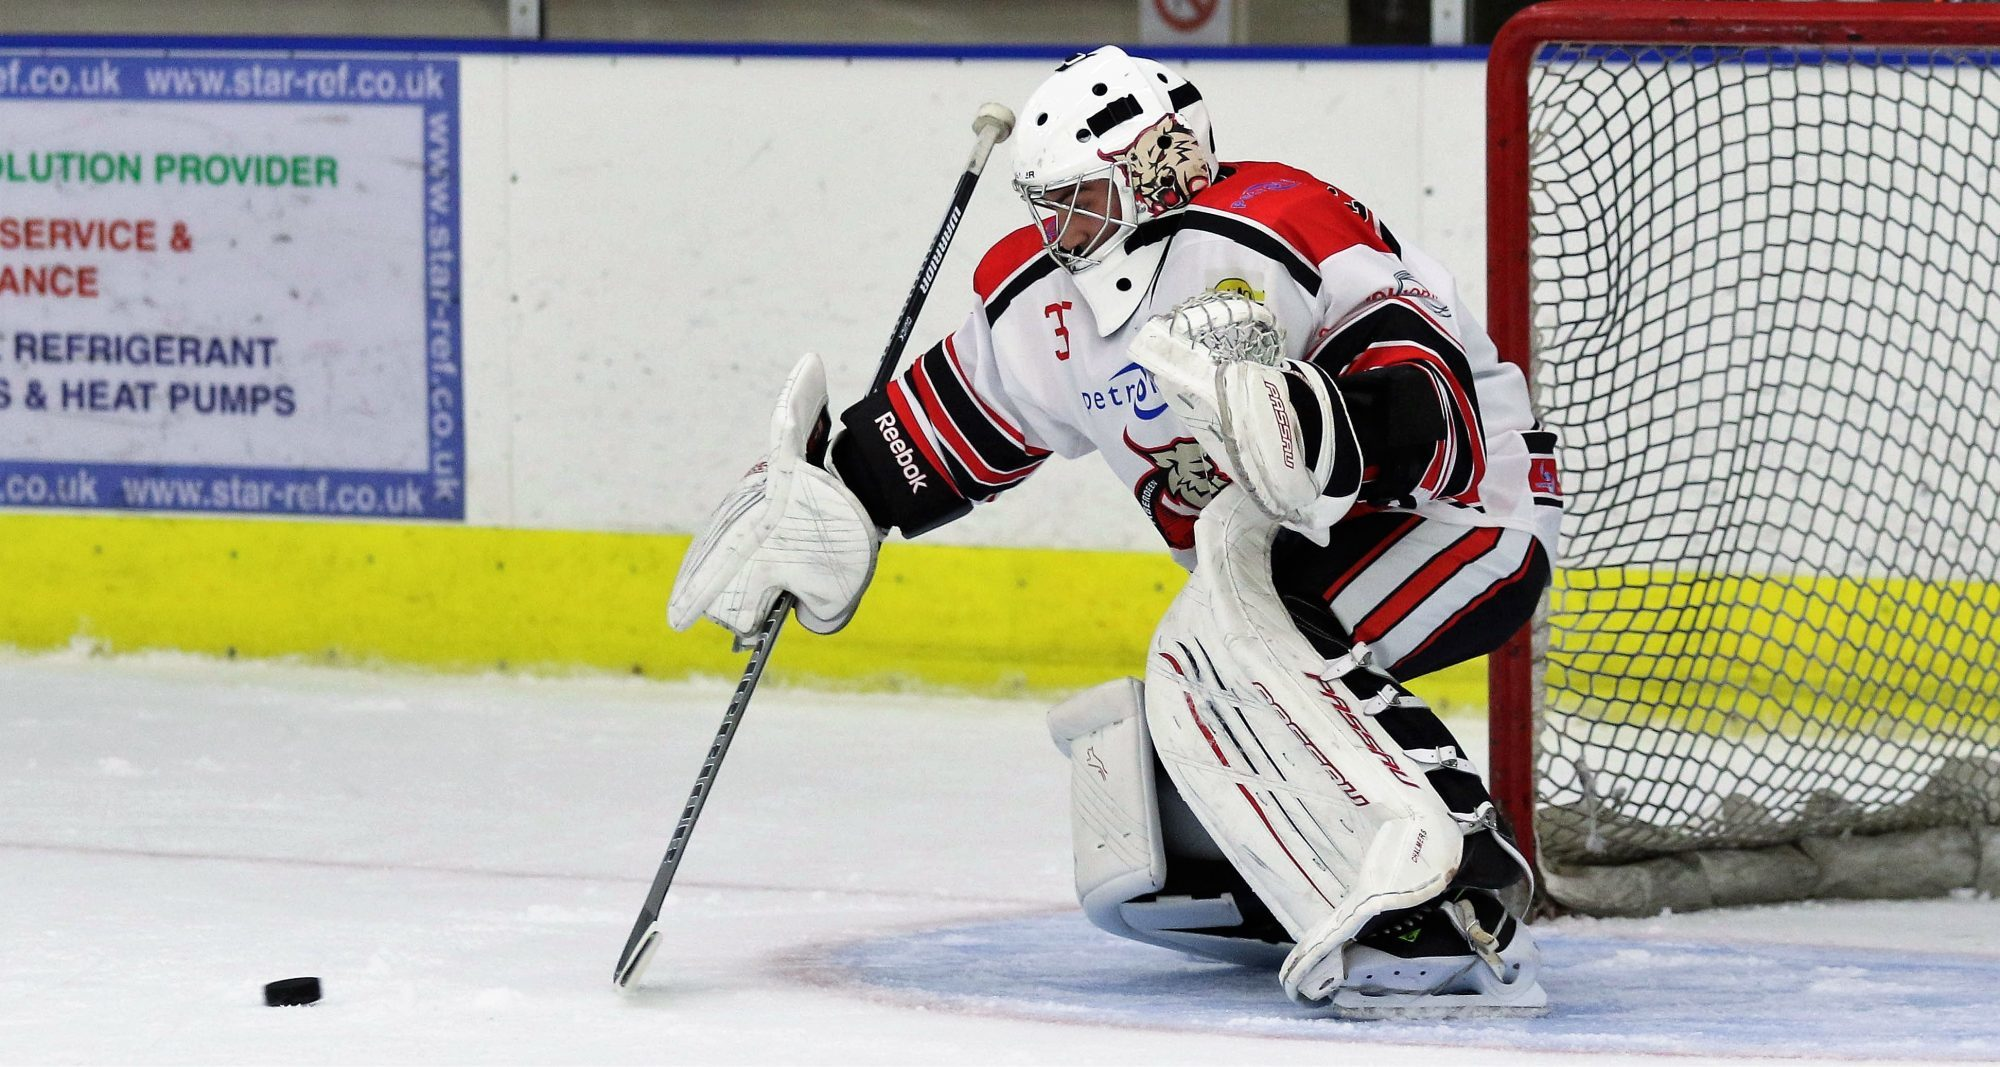 Aberdeen Lynx goaltender Craig Chalmers in action. Picture by Ferguson Photography.